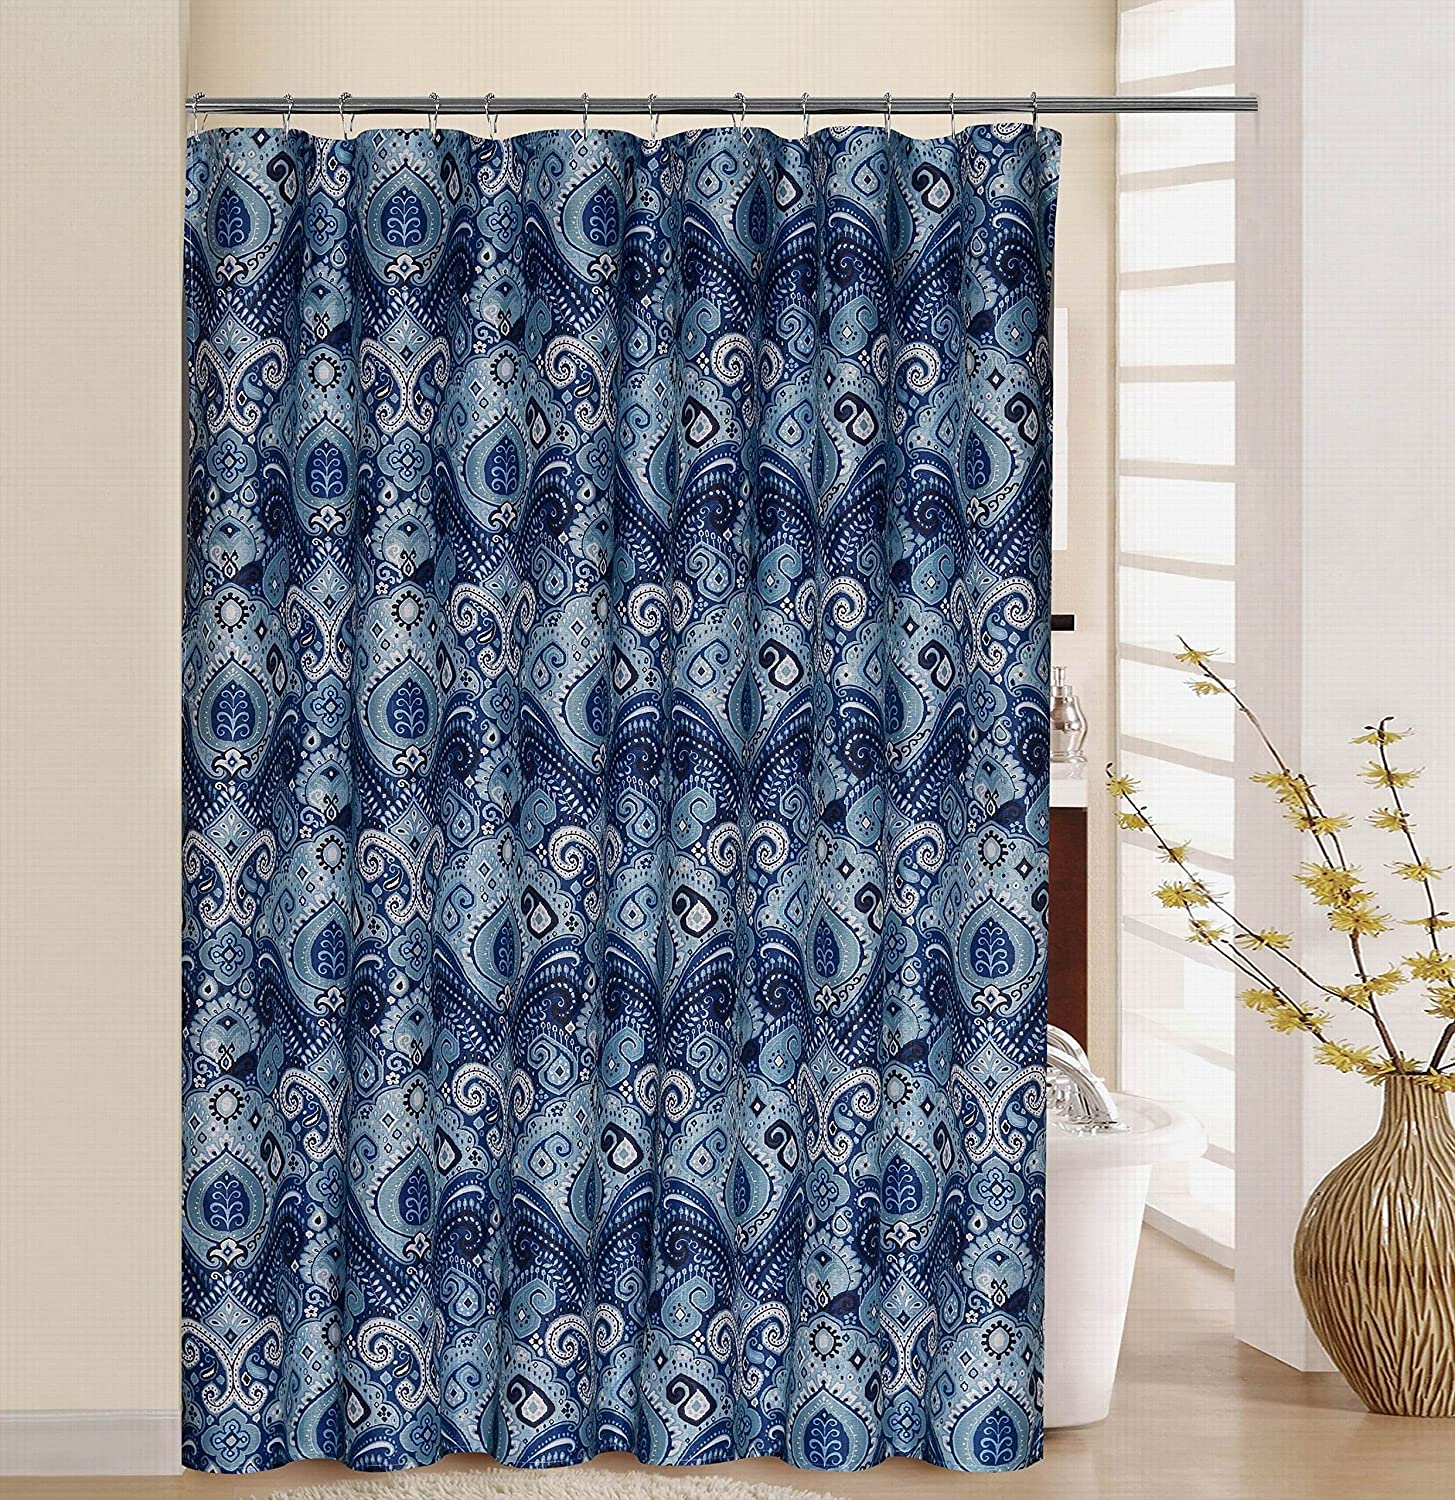 WAVERLY Shower Curtain Set 70' x 72' Floral Engagement